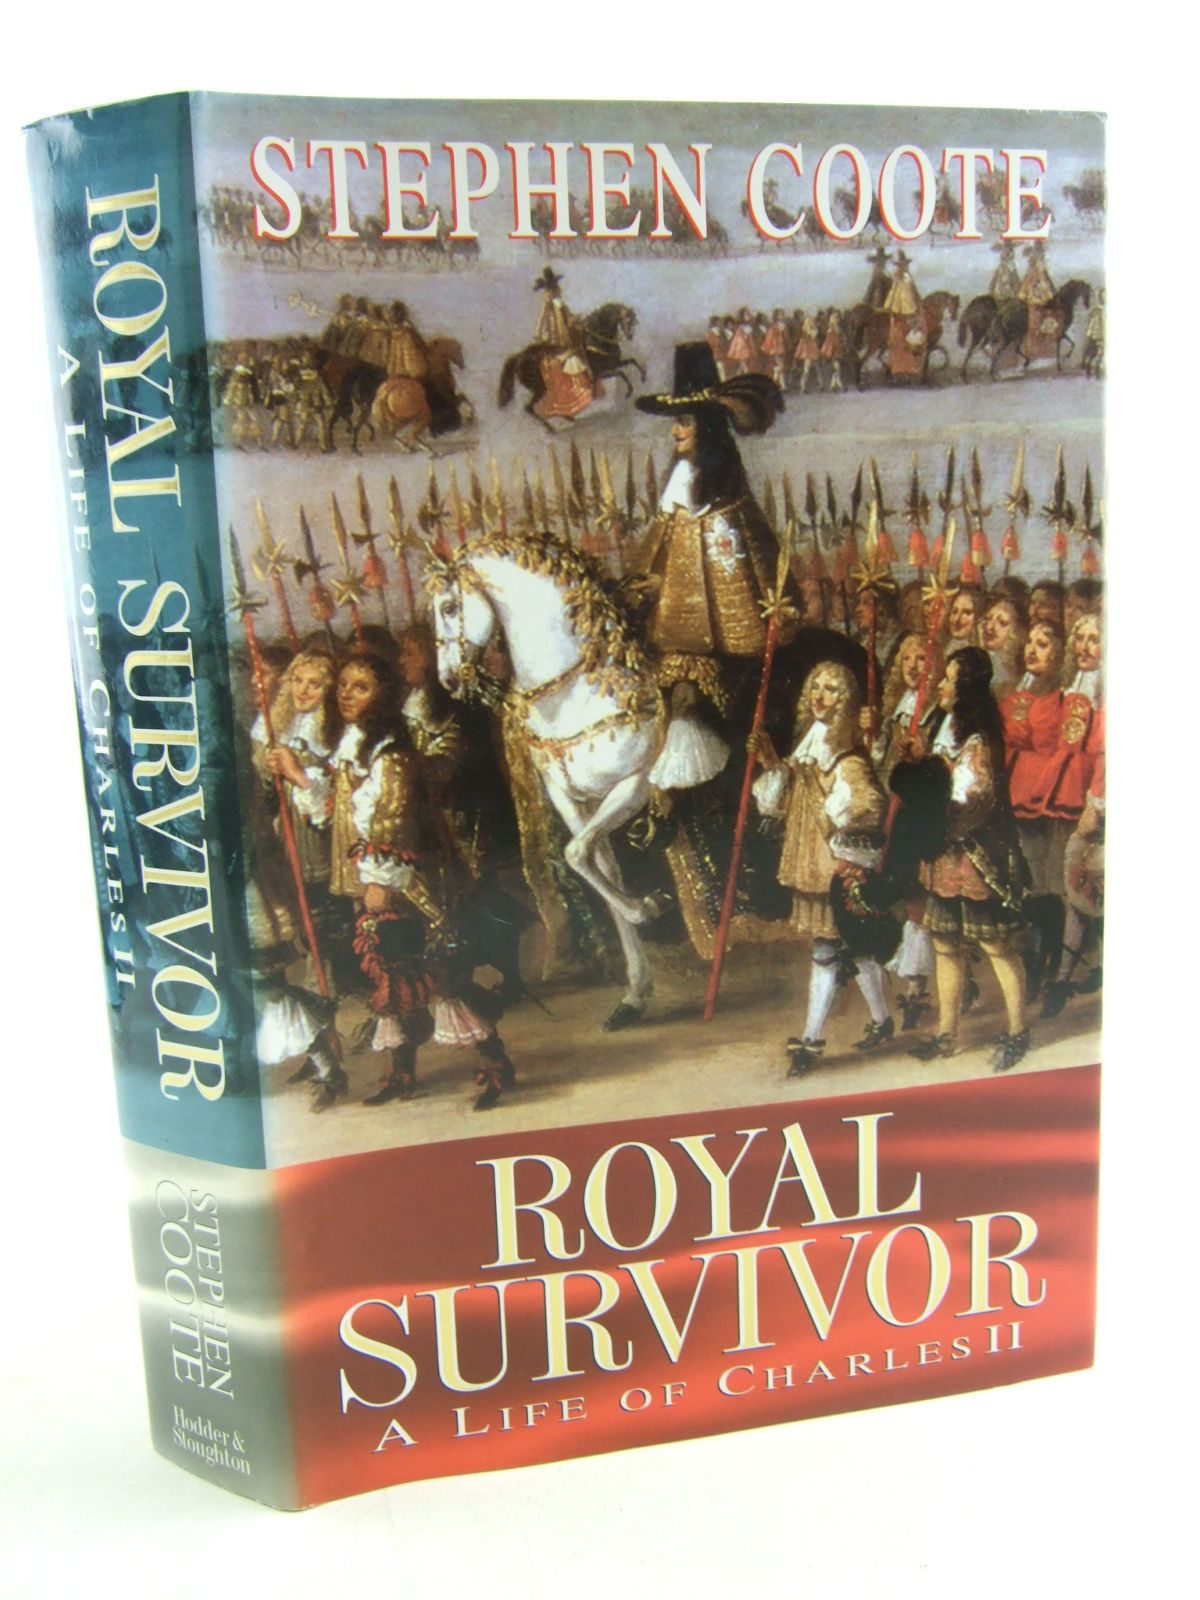 Photo of ROYAL SURVIVOR A LIFE OF CHARLES II written by Coote, Stephen published by Hodder & Stoughton (STOCK CODE: 1806412)  for sale by Stella & Rose's Books